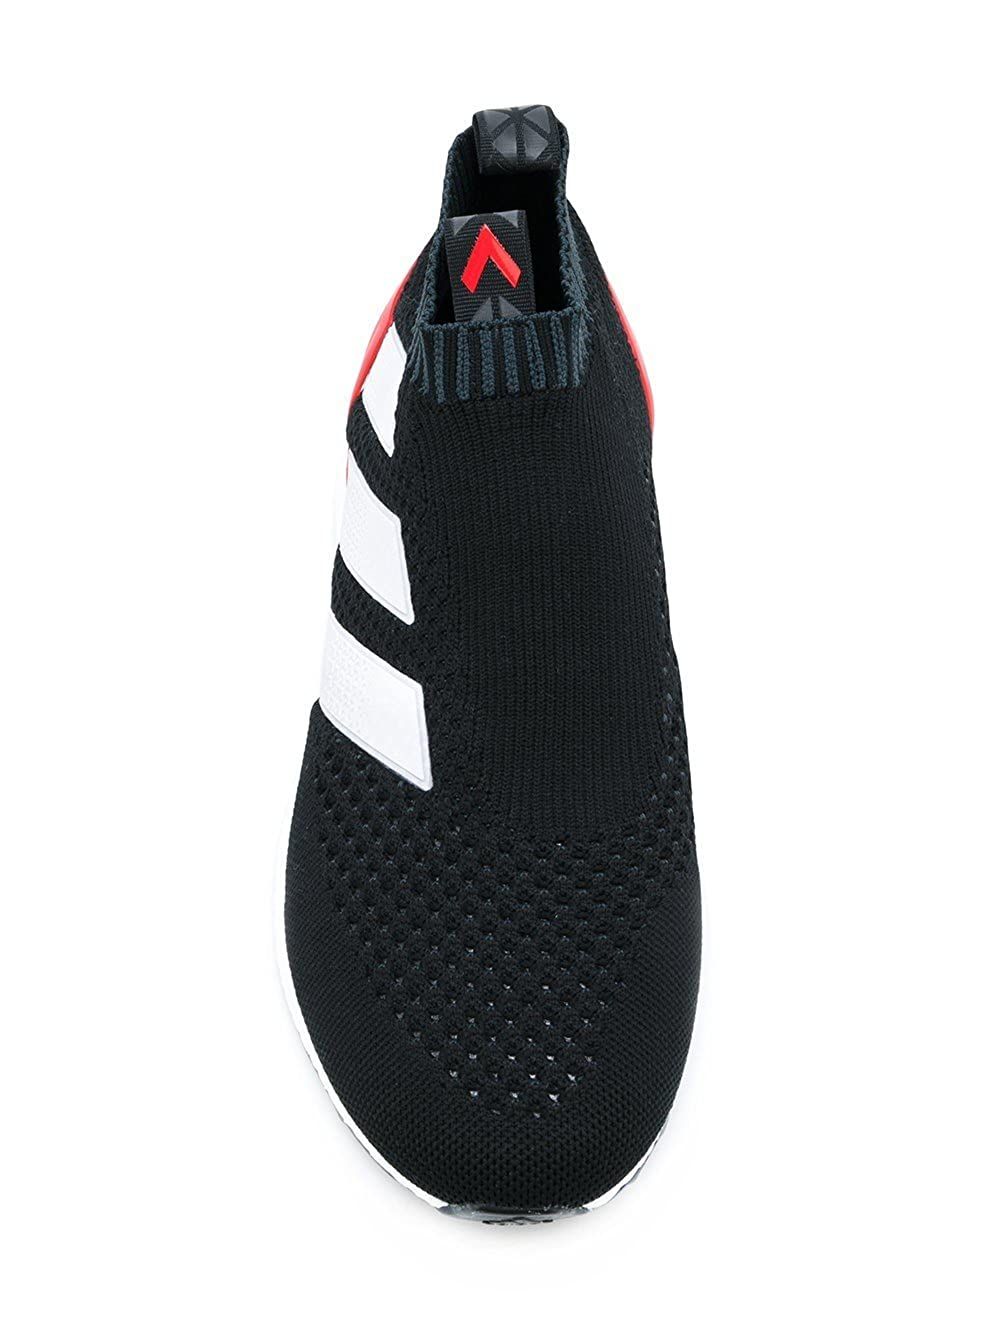 adidas x Paul Pogba Slip on Sneakers [BY9087BLK] Mens (USA